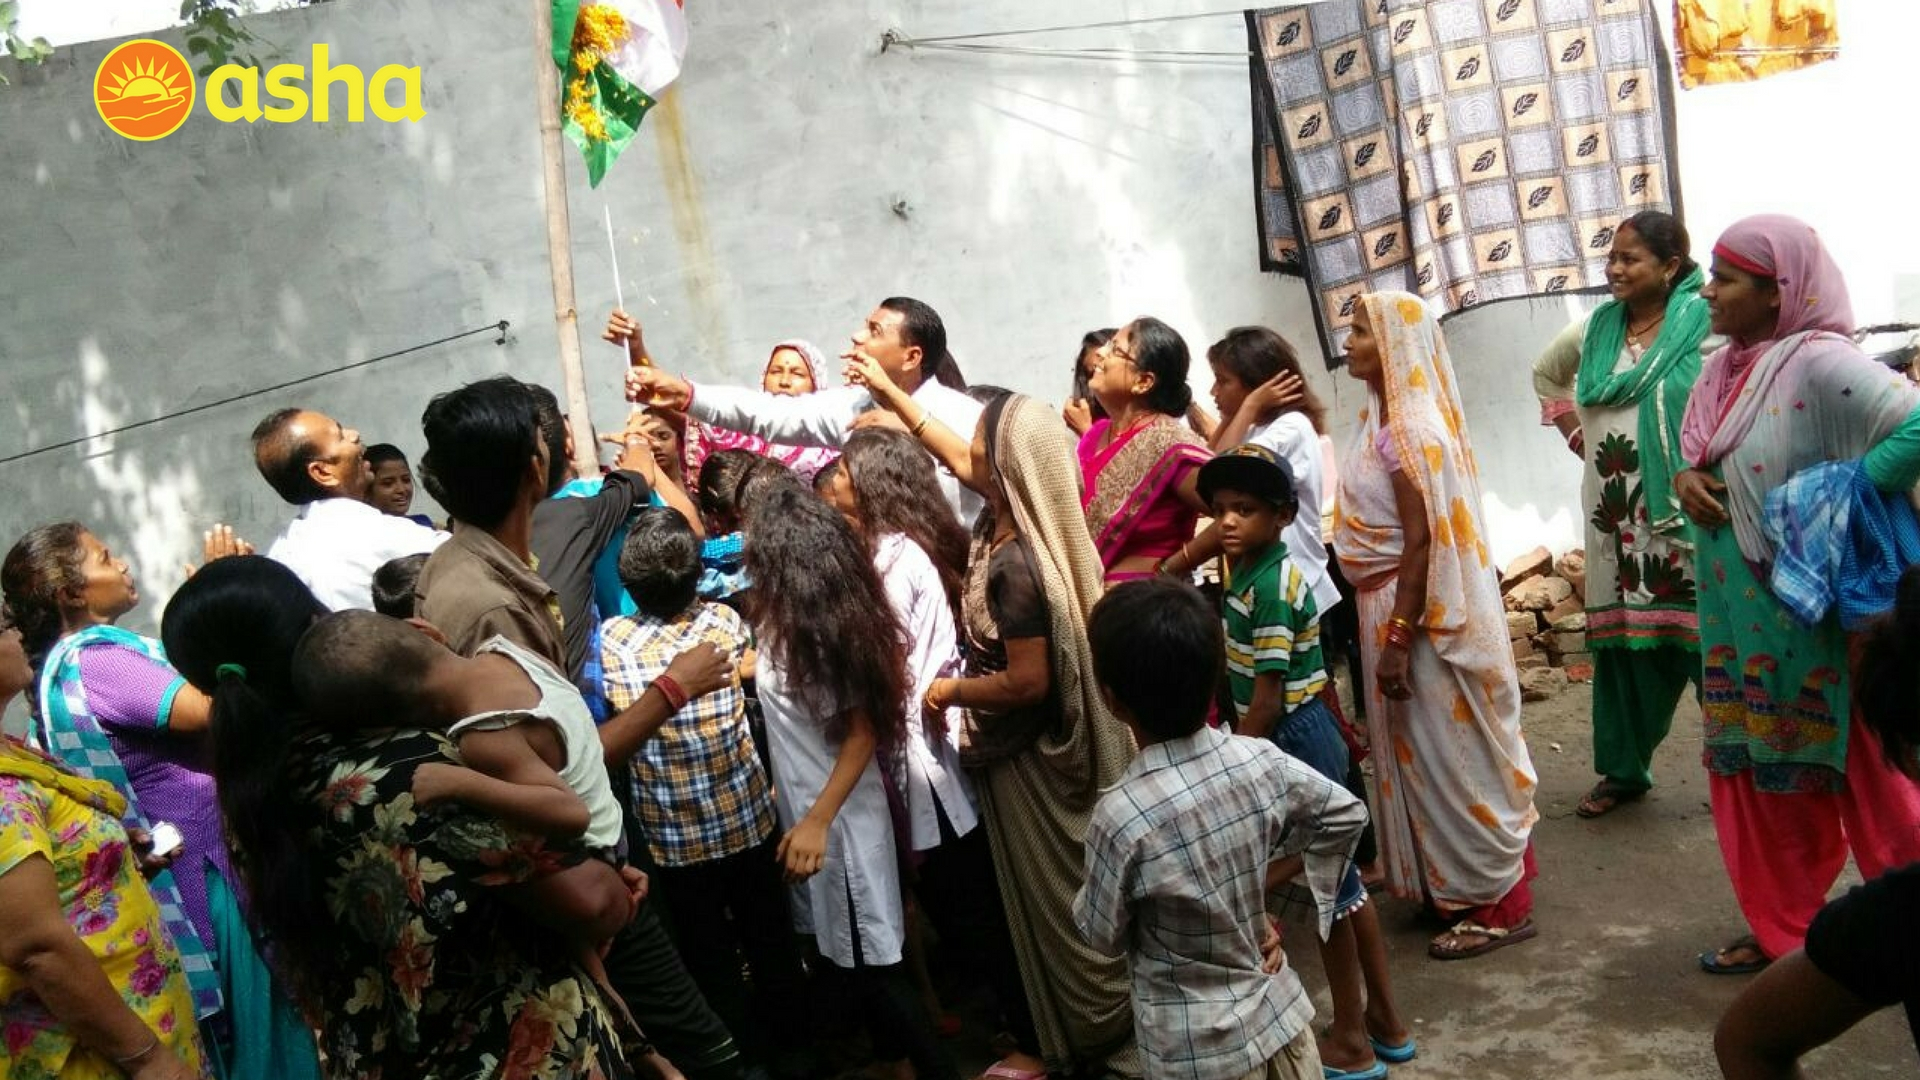 Flag hoisting at RK Puram slums (Mobile Health Van areas).